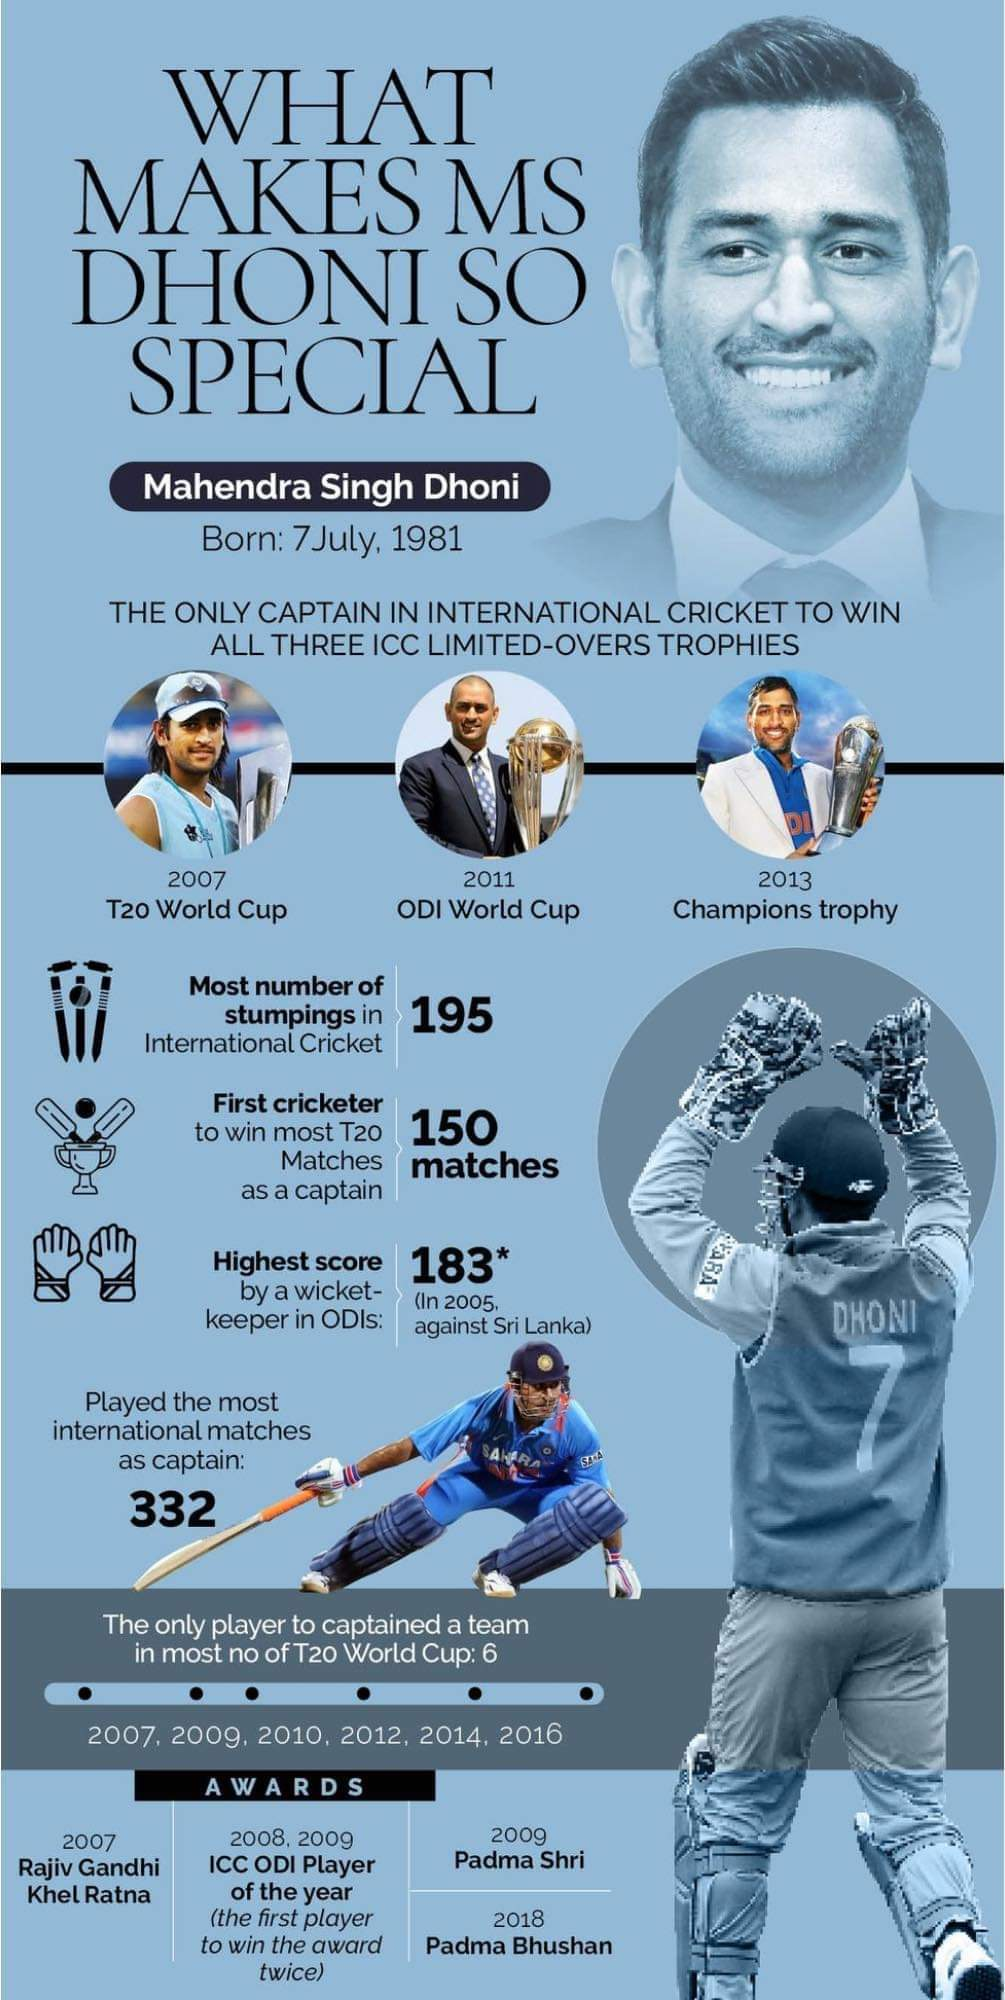 What Makes MS Dhoni 'So Special'?